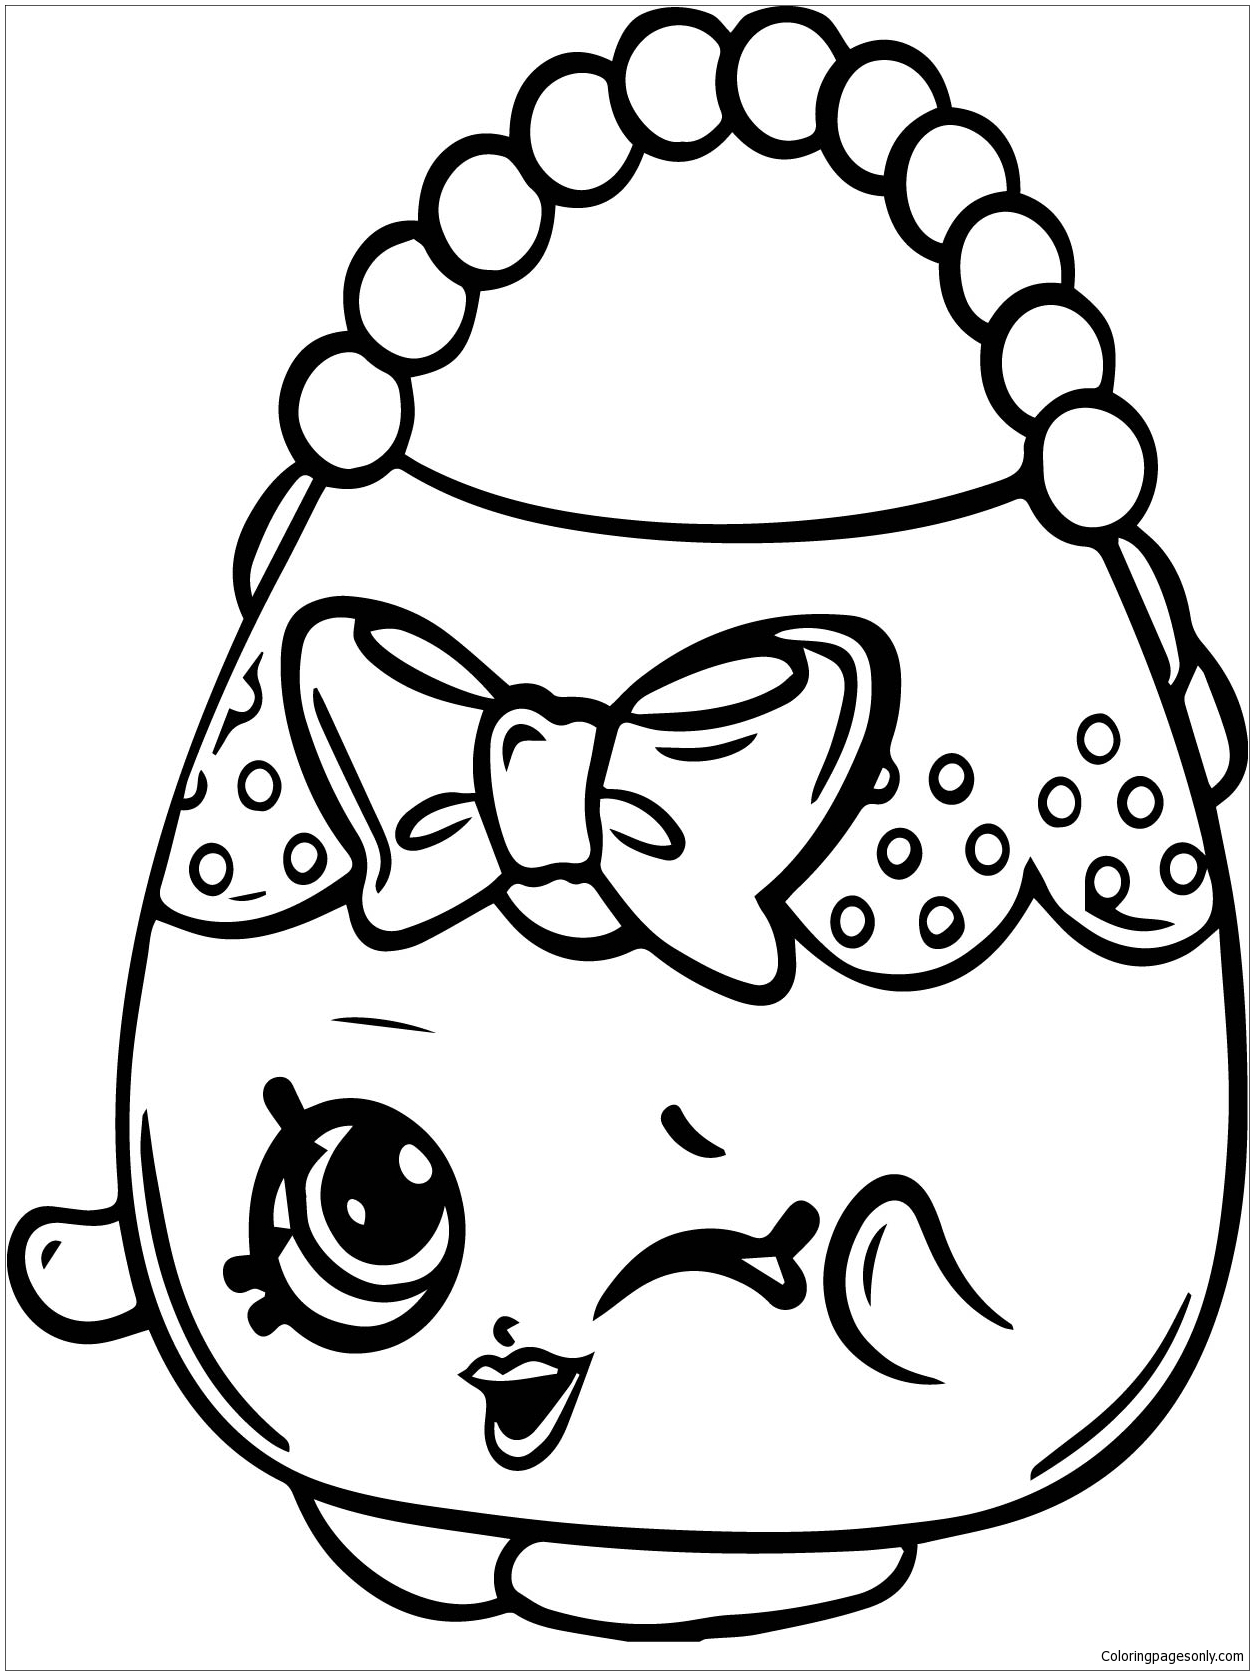 1254x1675 Best Of Shopkins Coloring Pages Page Of Shopkins Coloring